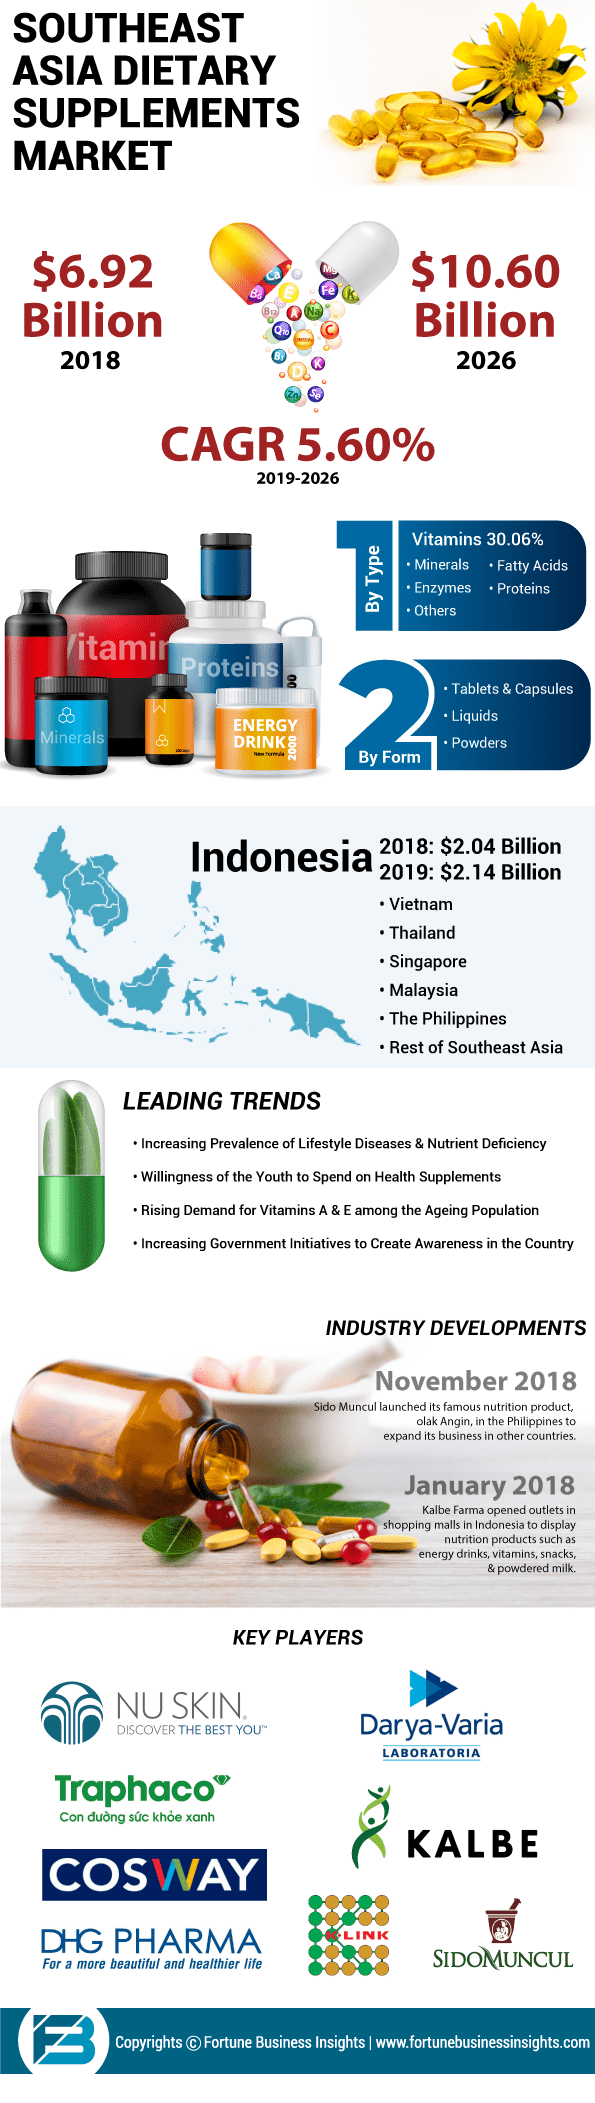 Southeast Asia Dietary Supplements Market